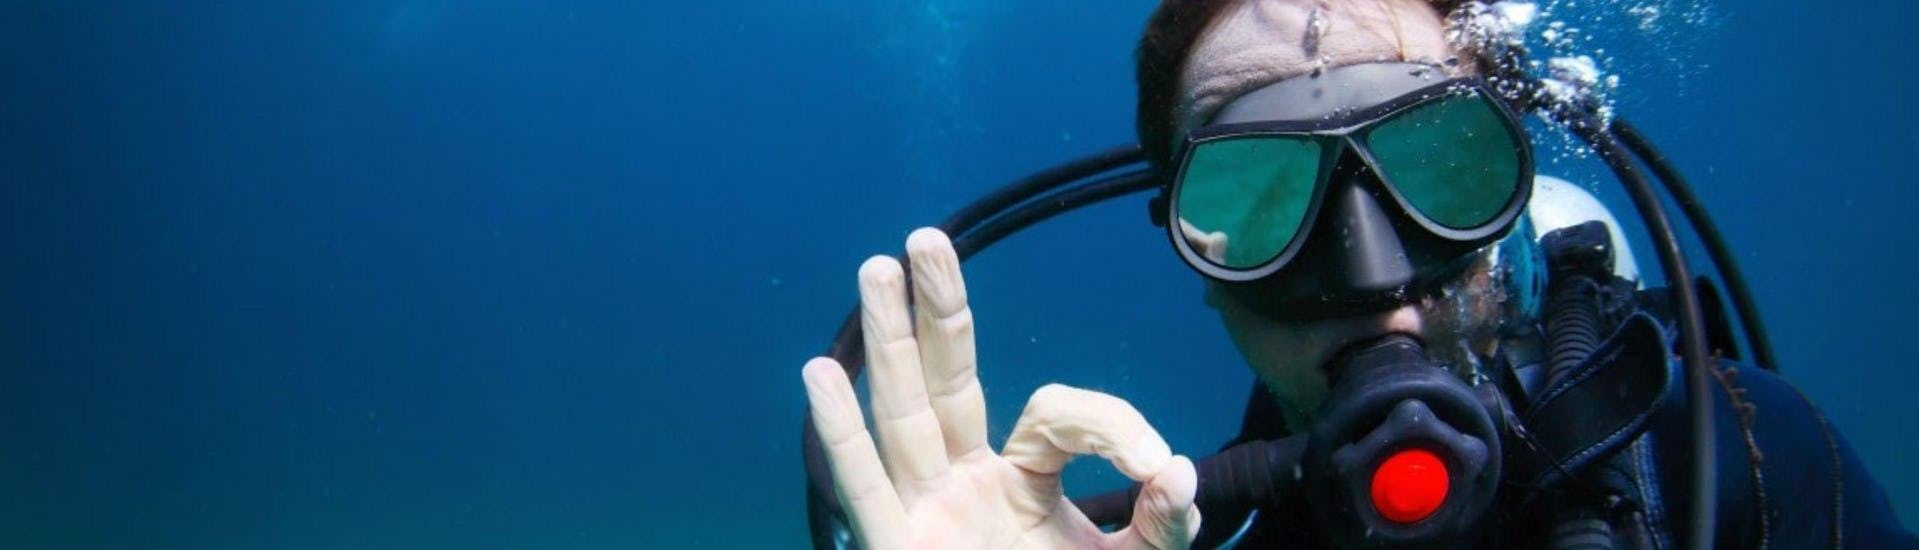 discover-scuba-diving-on-pag-for-beginners-foka-diving-centar-novalja-hero